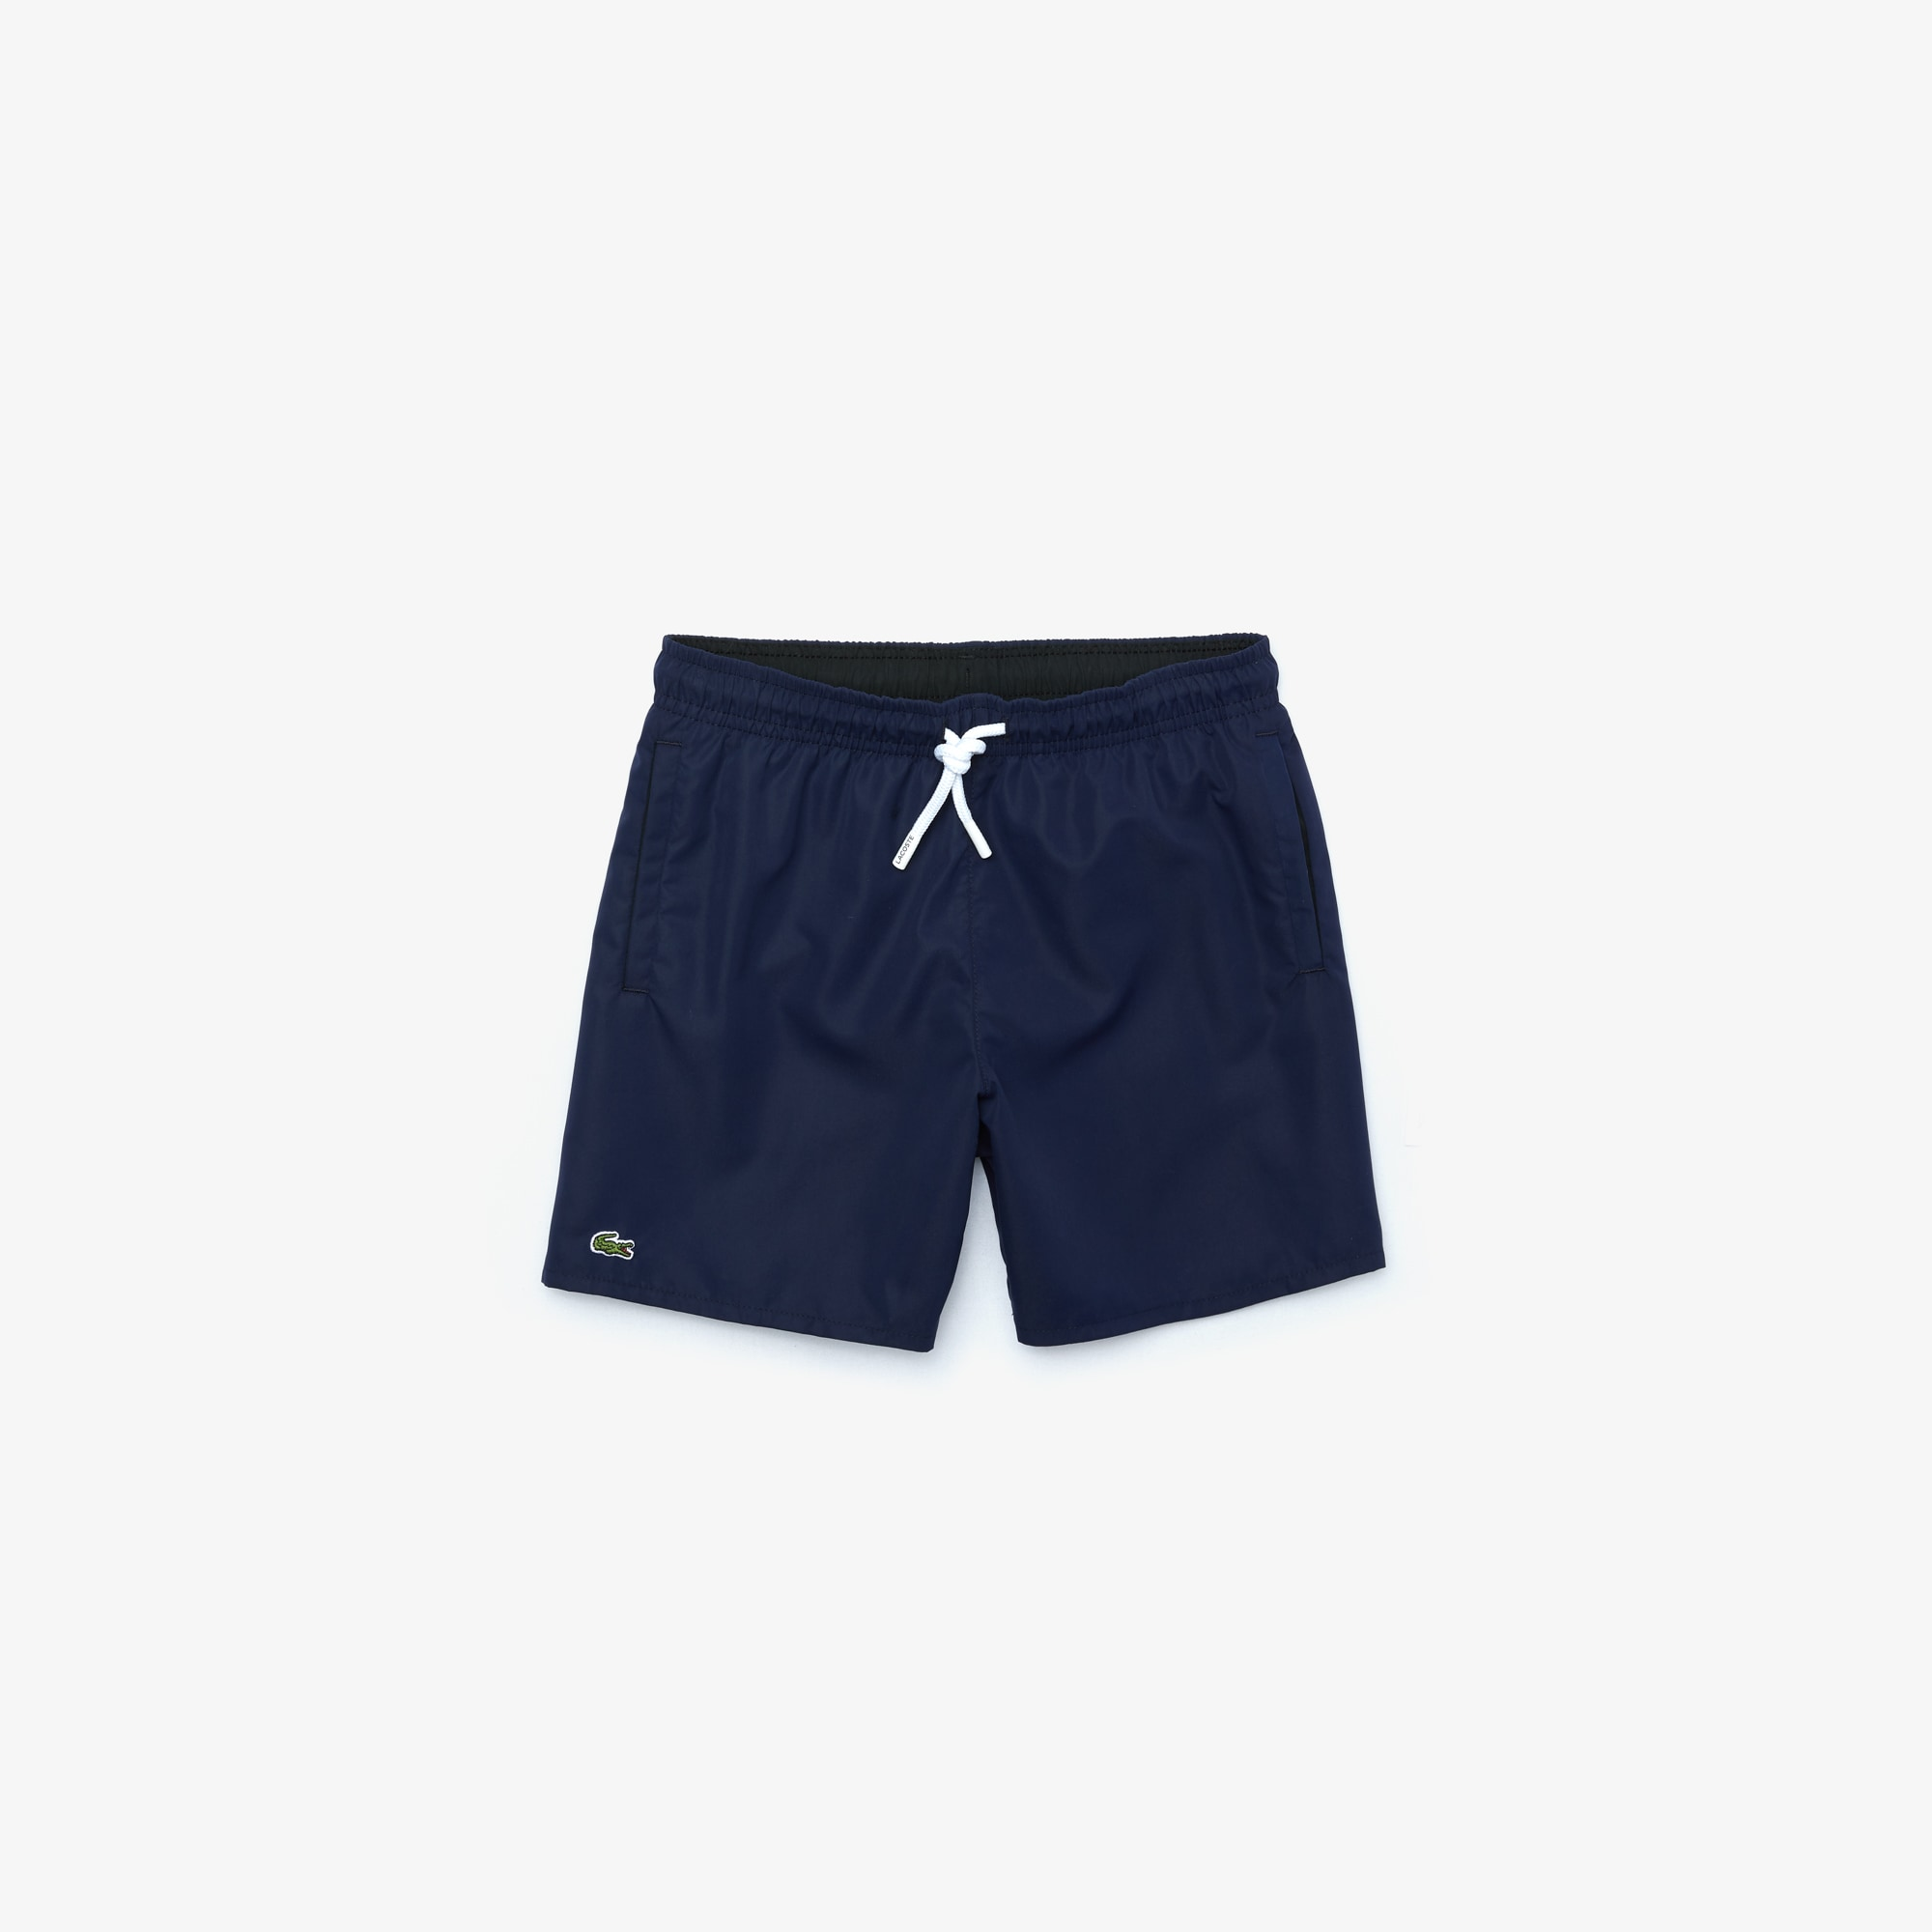 라코스테 Lacoste Boys' Classic Swim Trunks